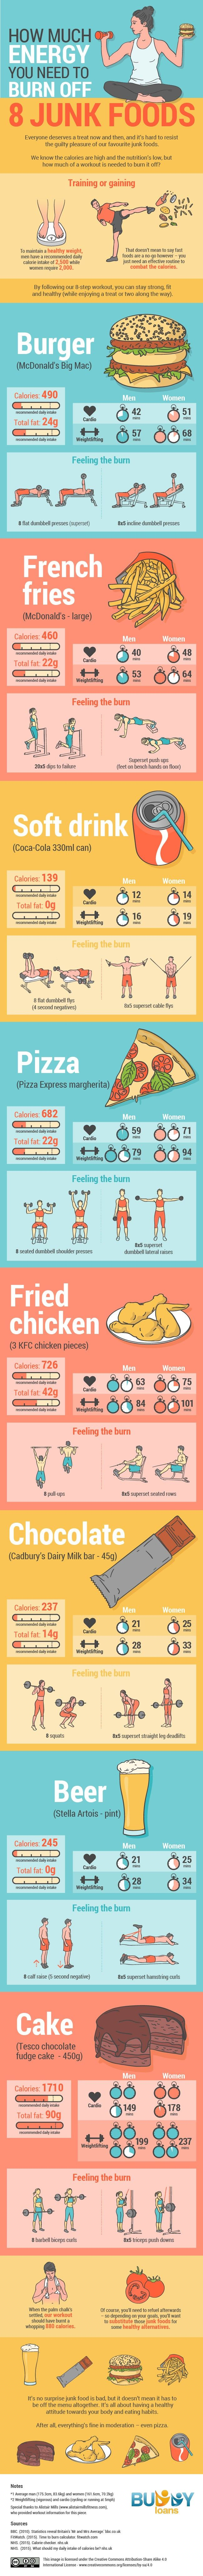 How Much Energy You Need To Burn Off 8 Junk Foods [Infographic